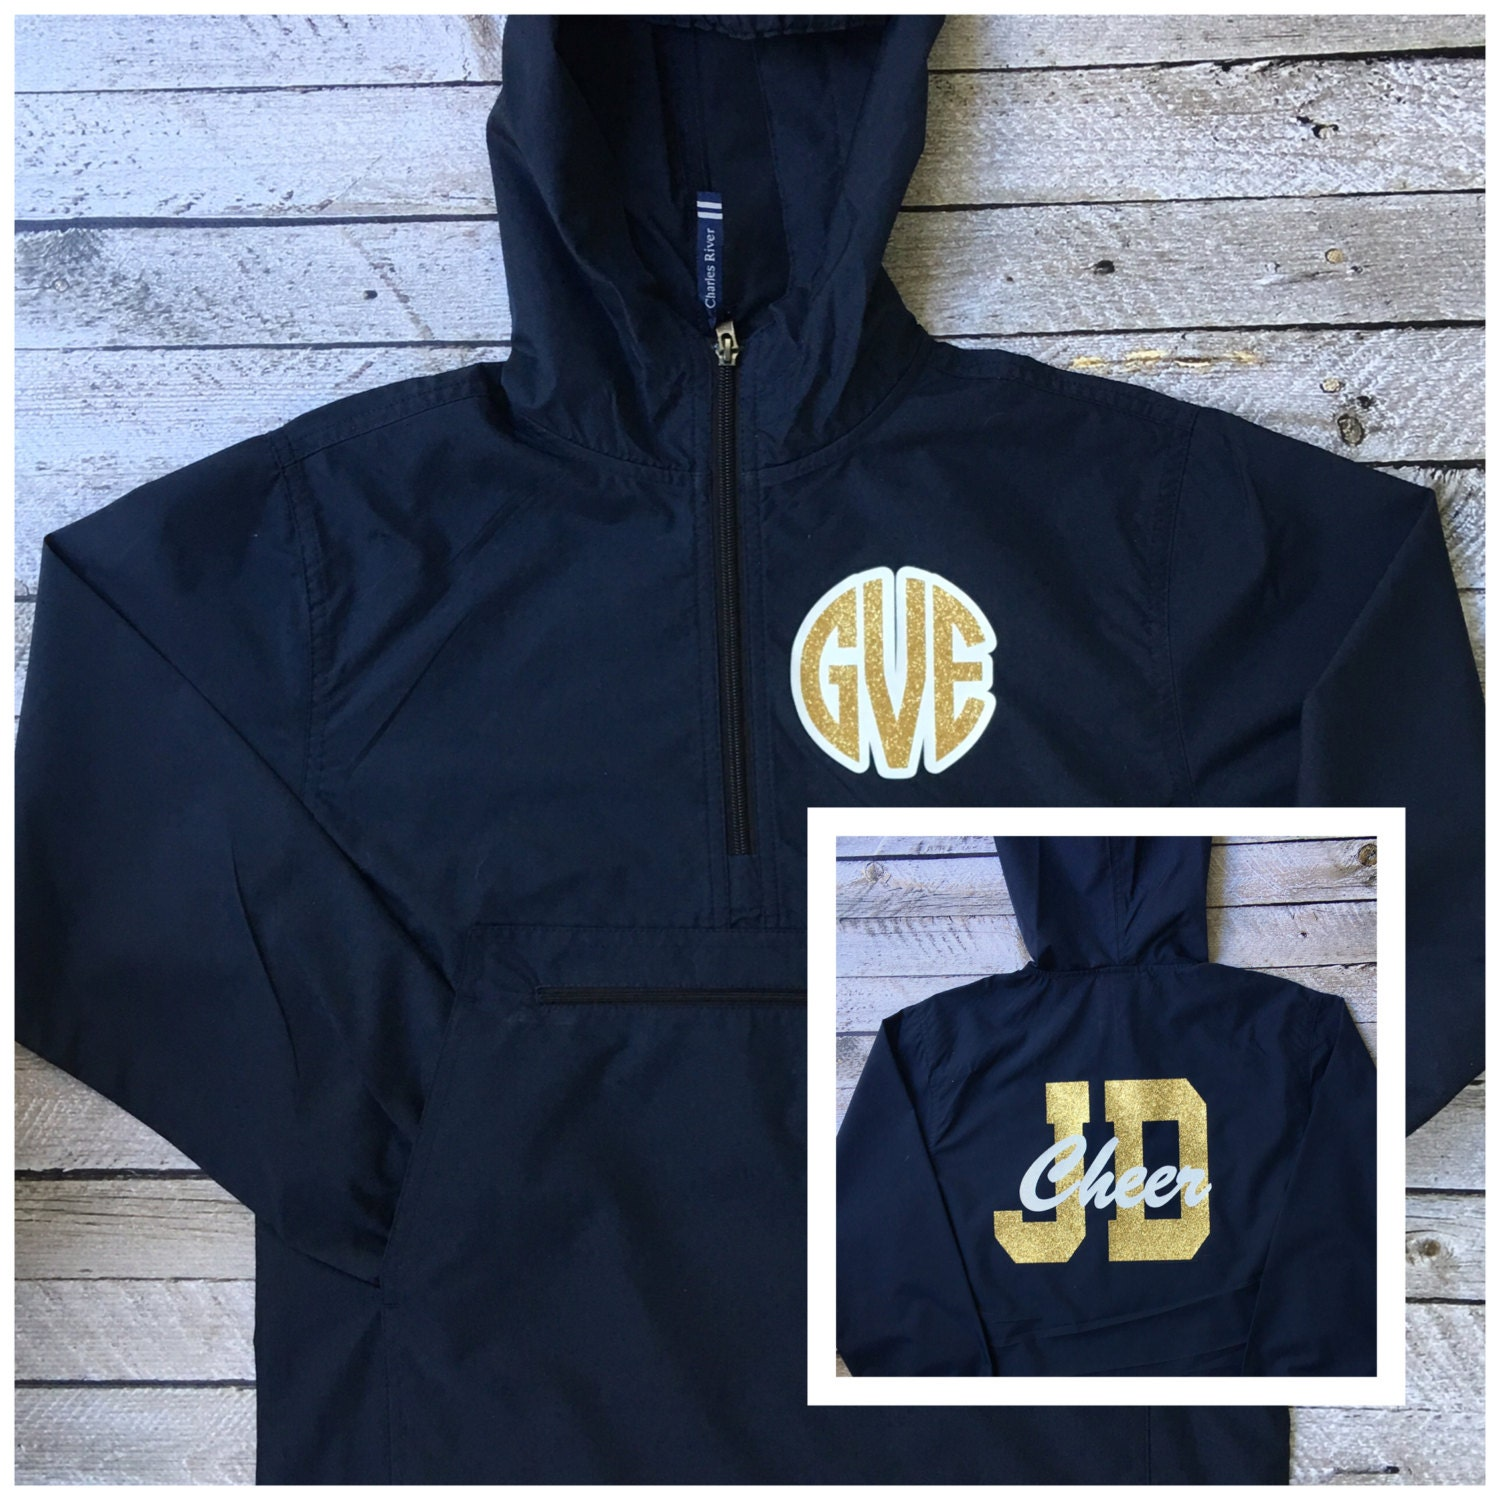 monogrammed jackets  cheer jacket  custom anorak jacket  pullover rain jacket  cheer team